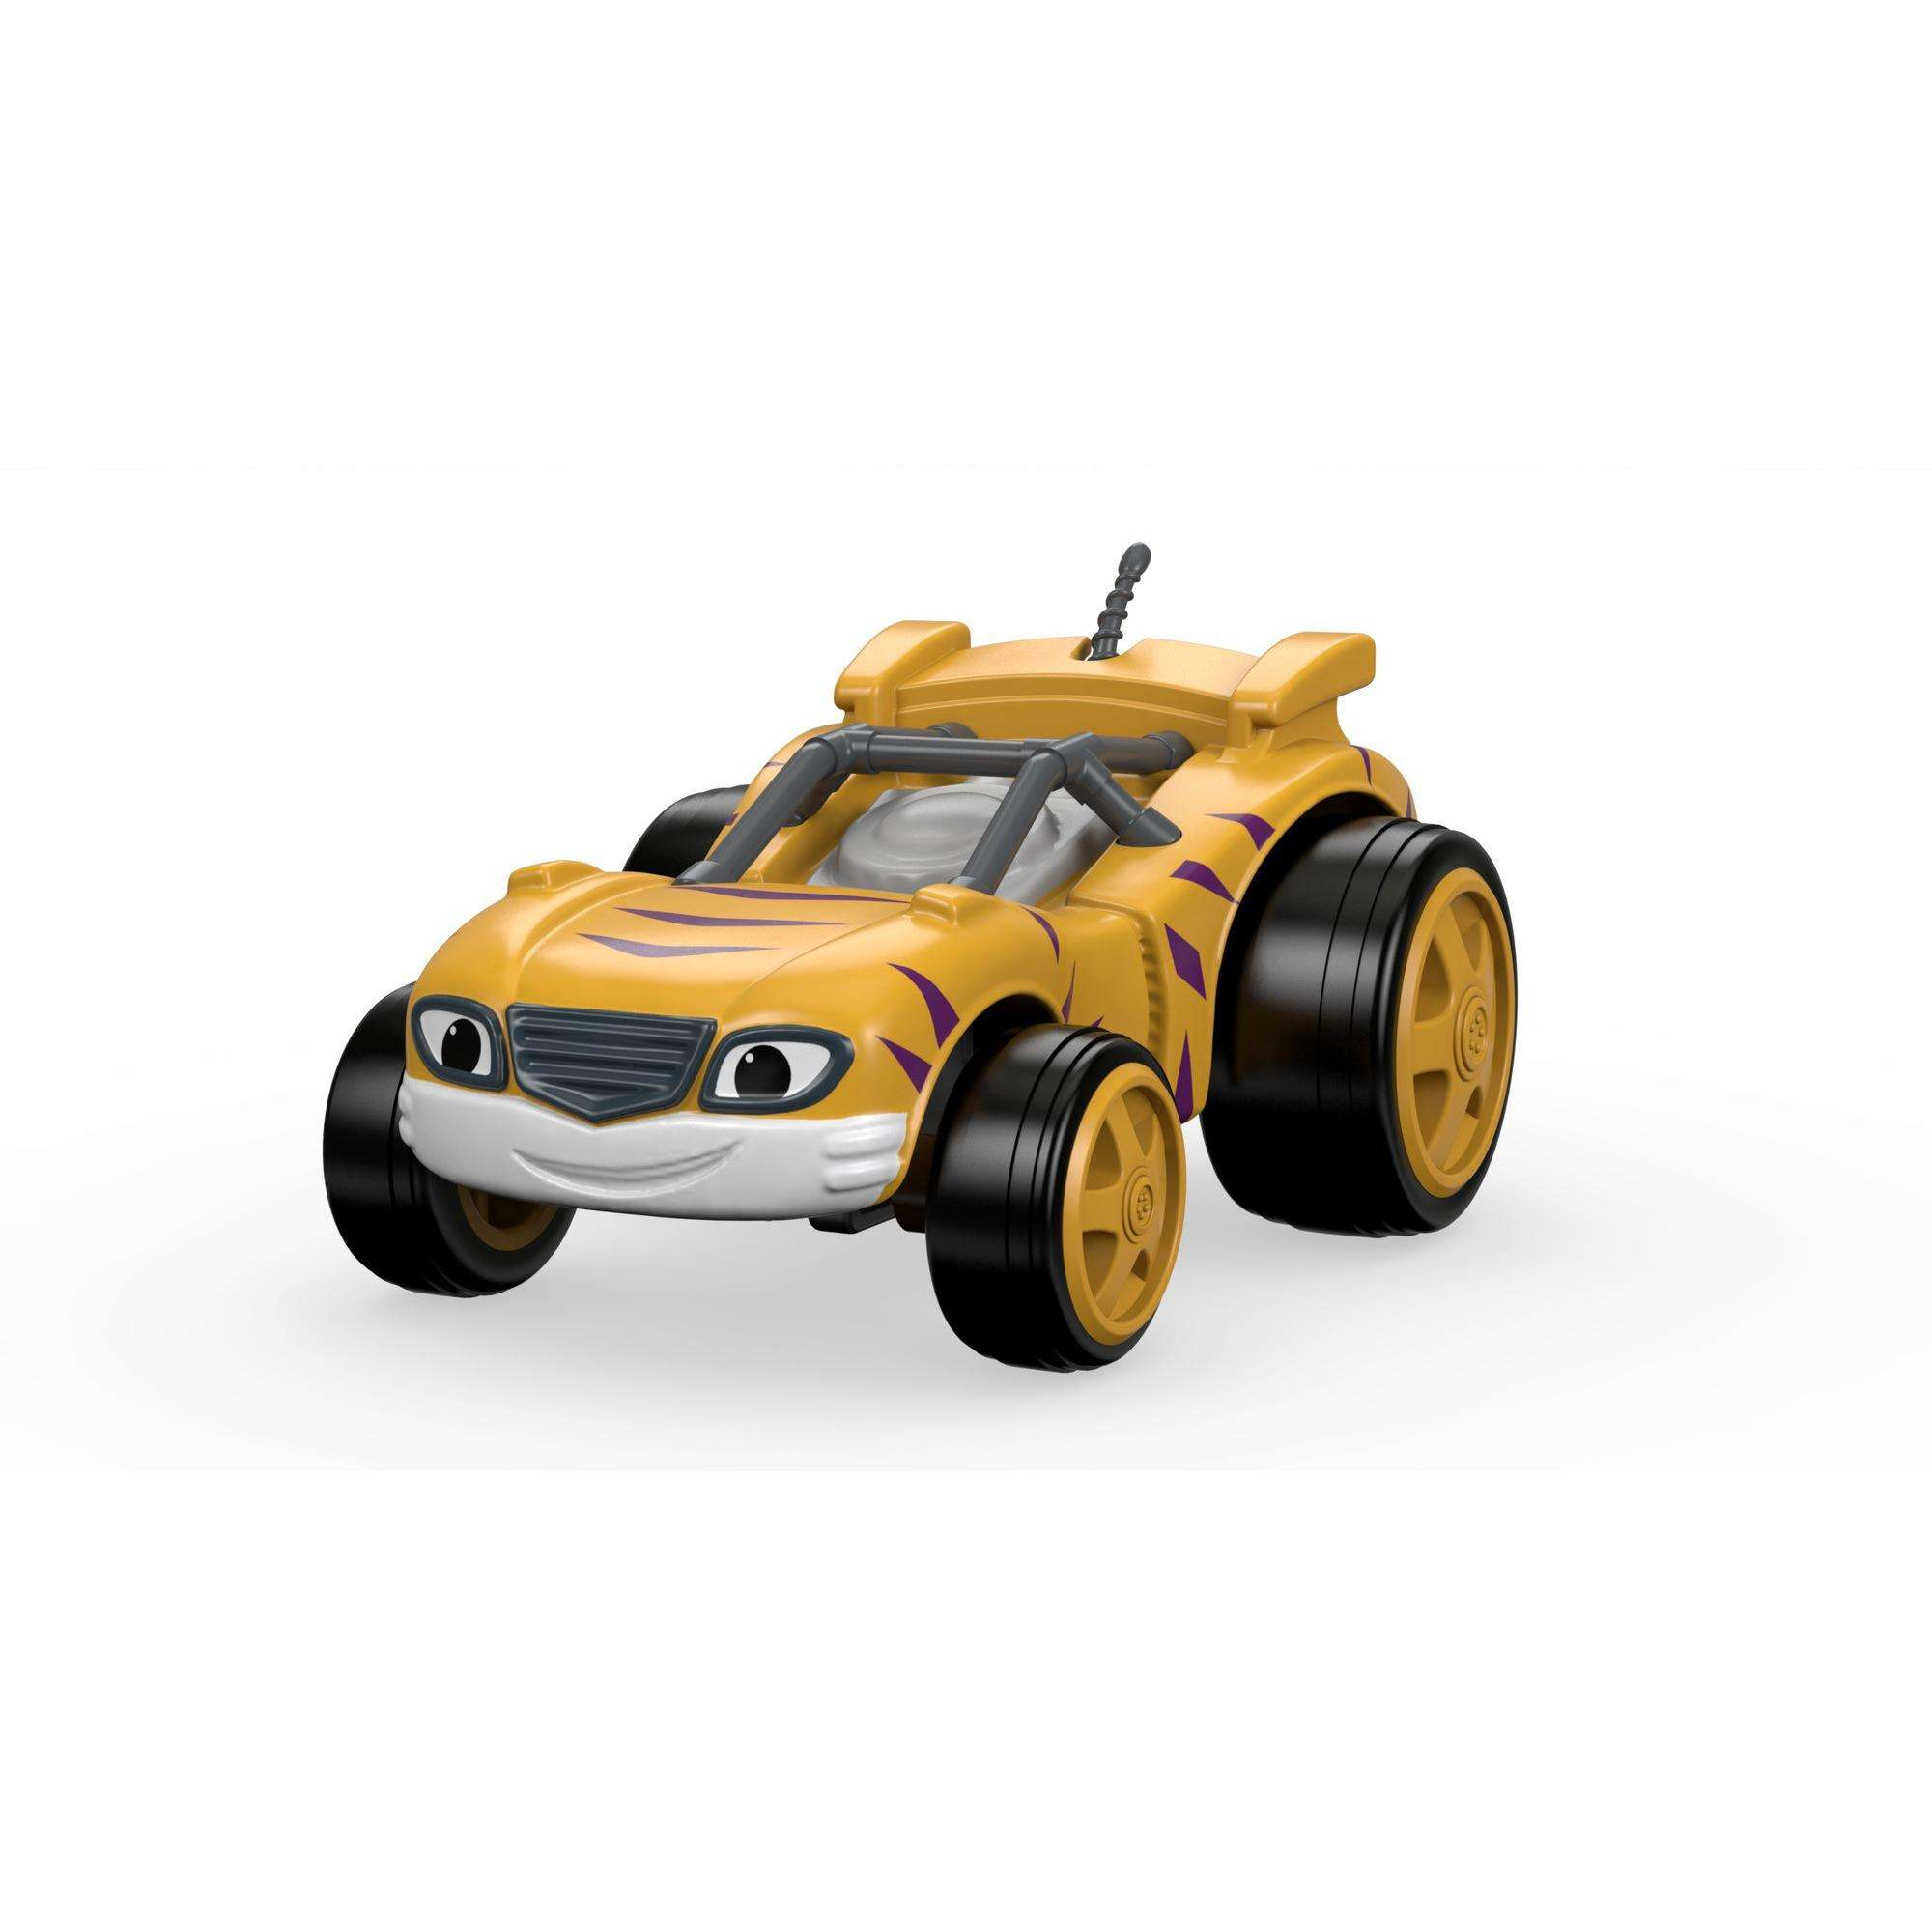 Nickelodeon Blaze and the Monster Machines Race Car Stripes